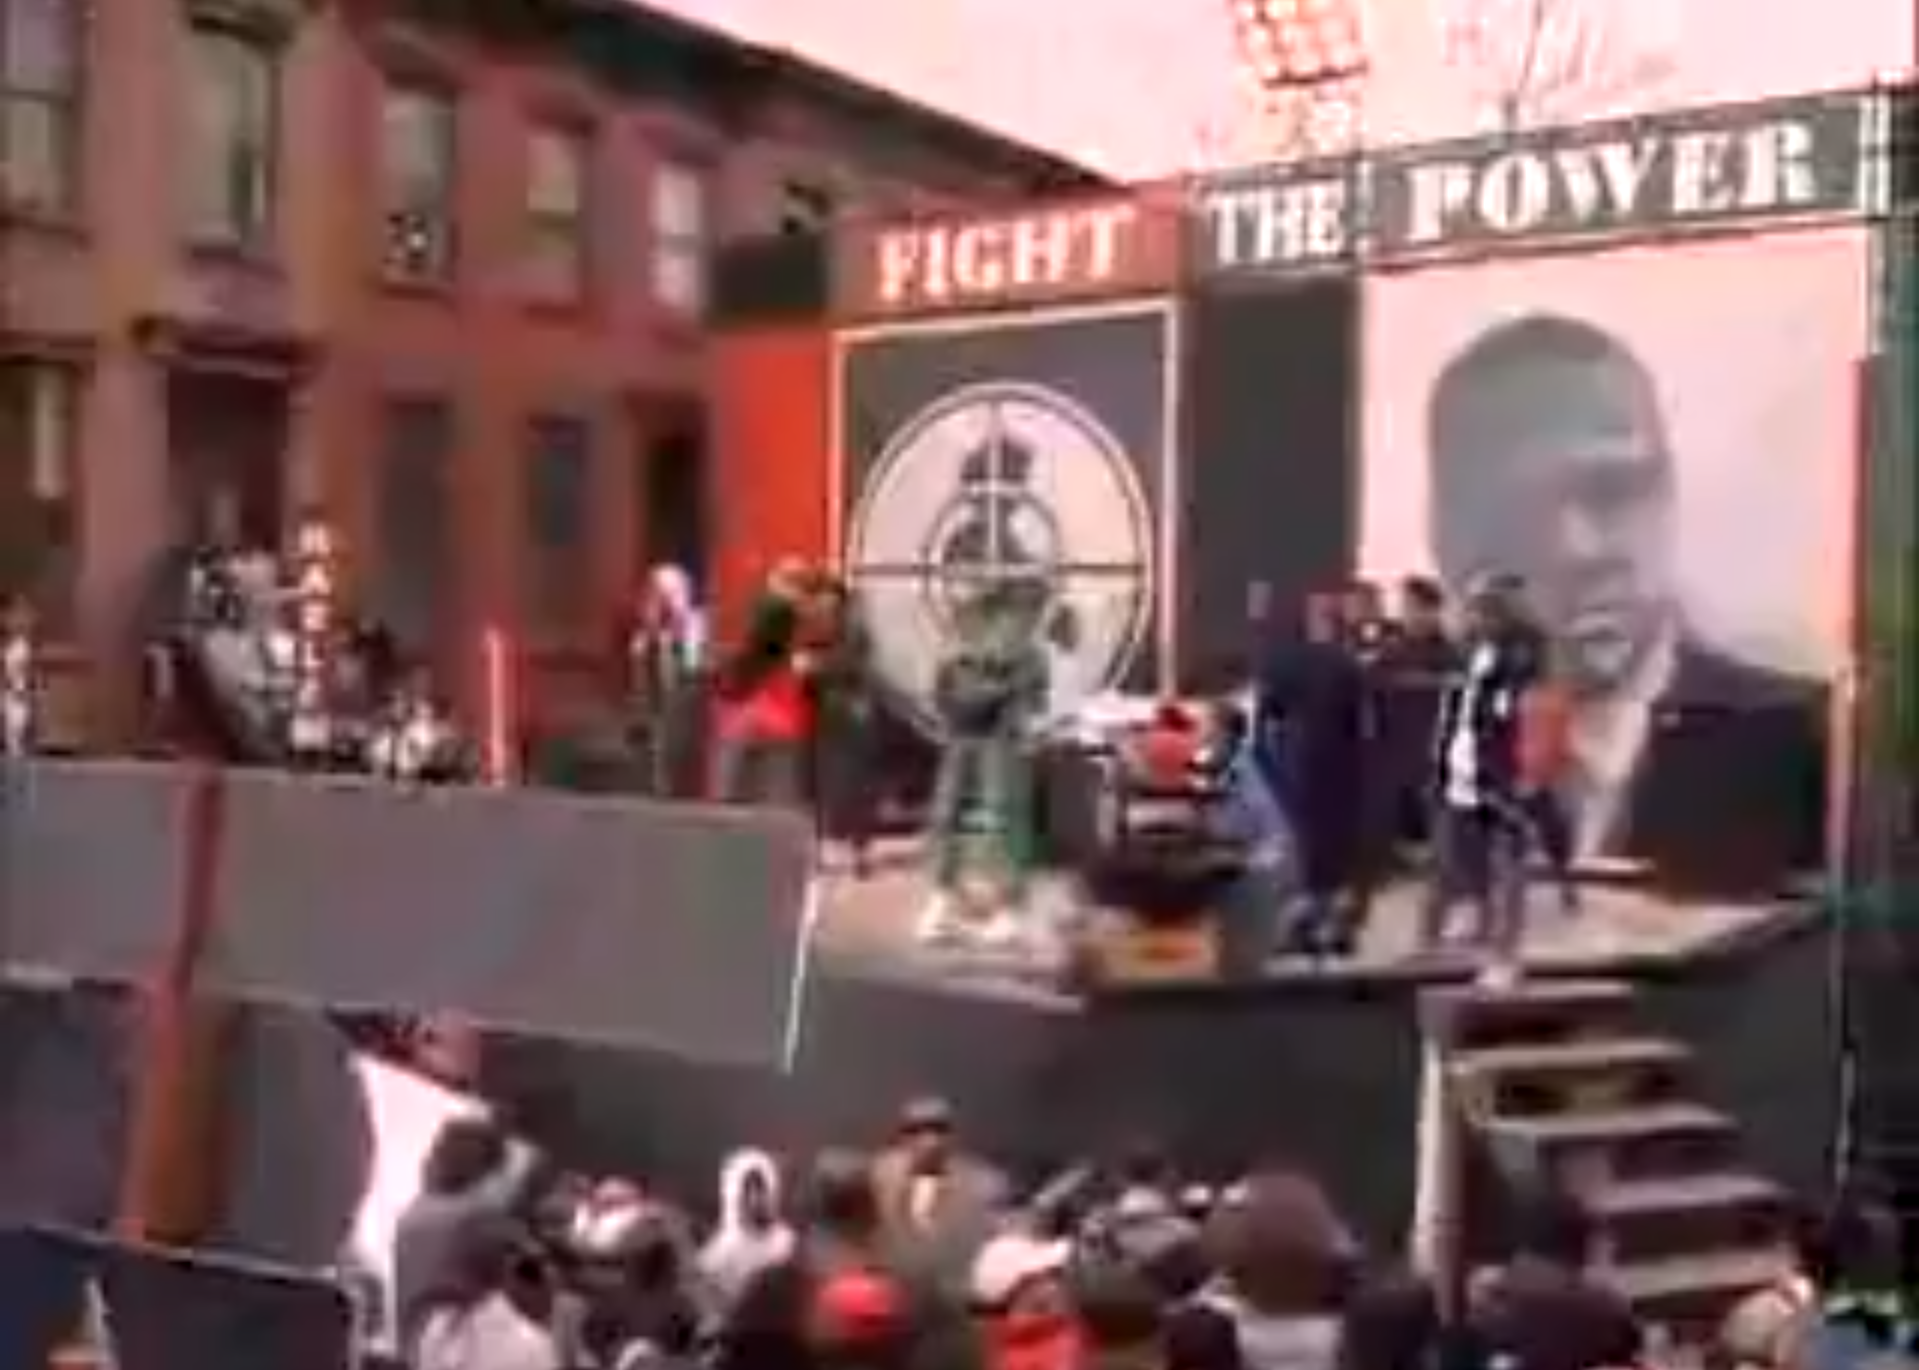 public-enemy-fight-the-power